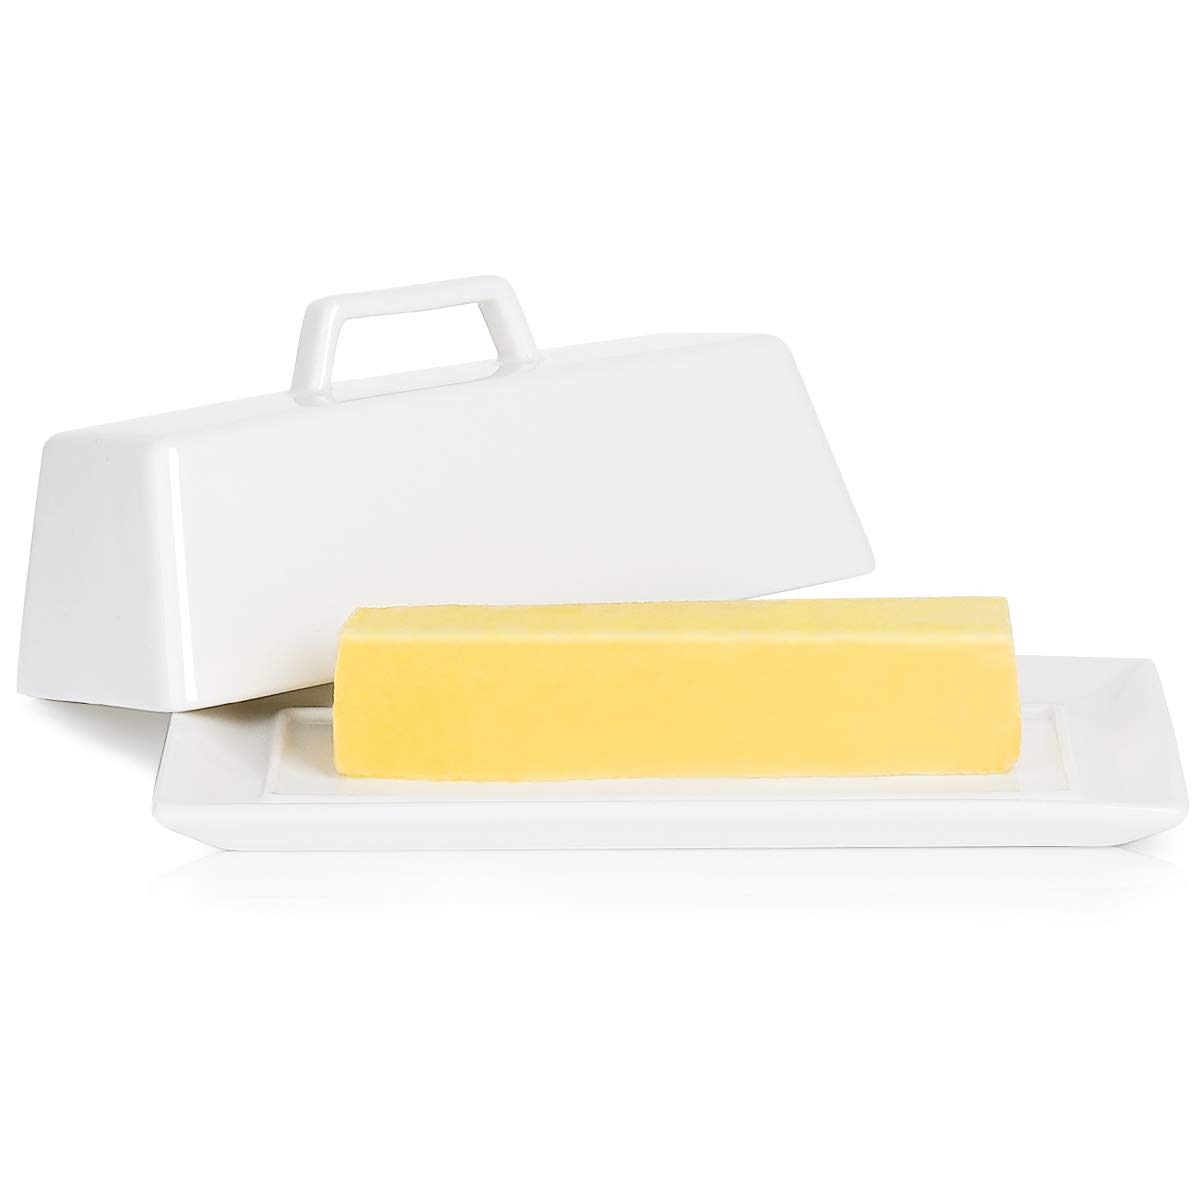 Porcelain Butter Dish with Lid, Covered Butter Keeper - Handle Design - Dishwasher Safe, White - Better Butter & Beyond